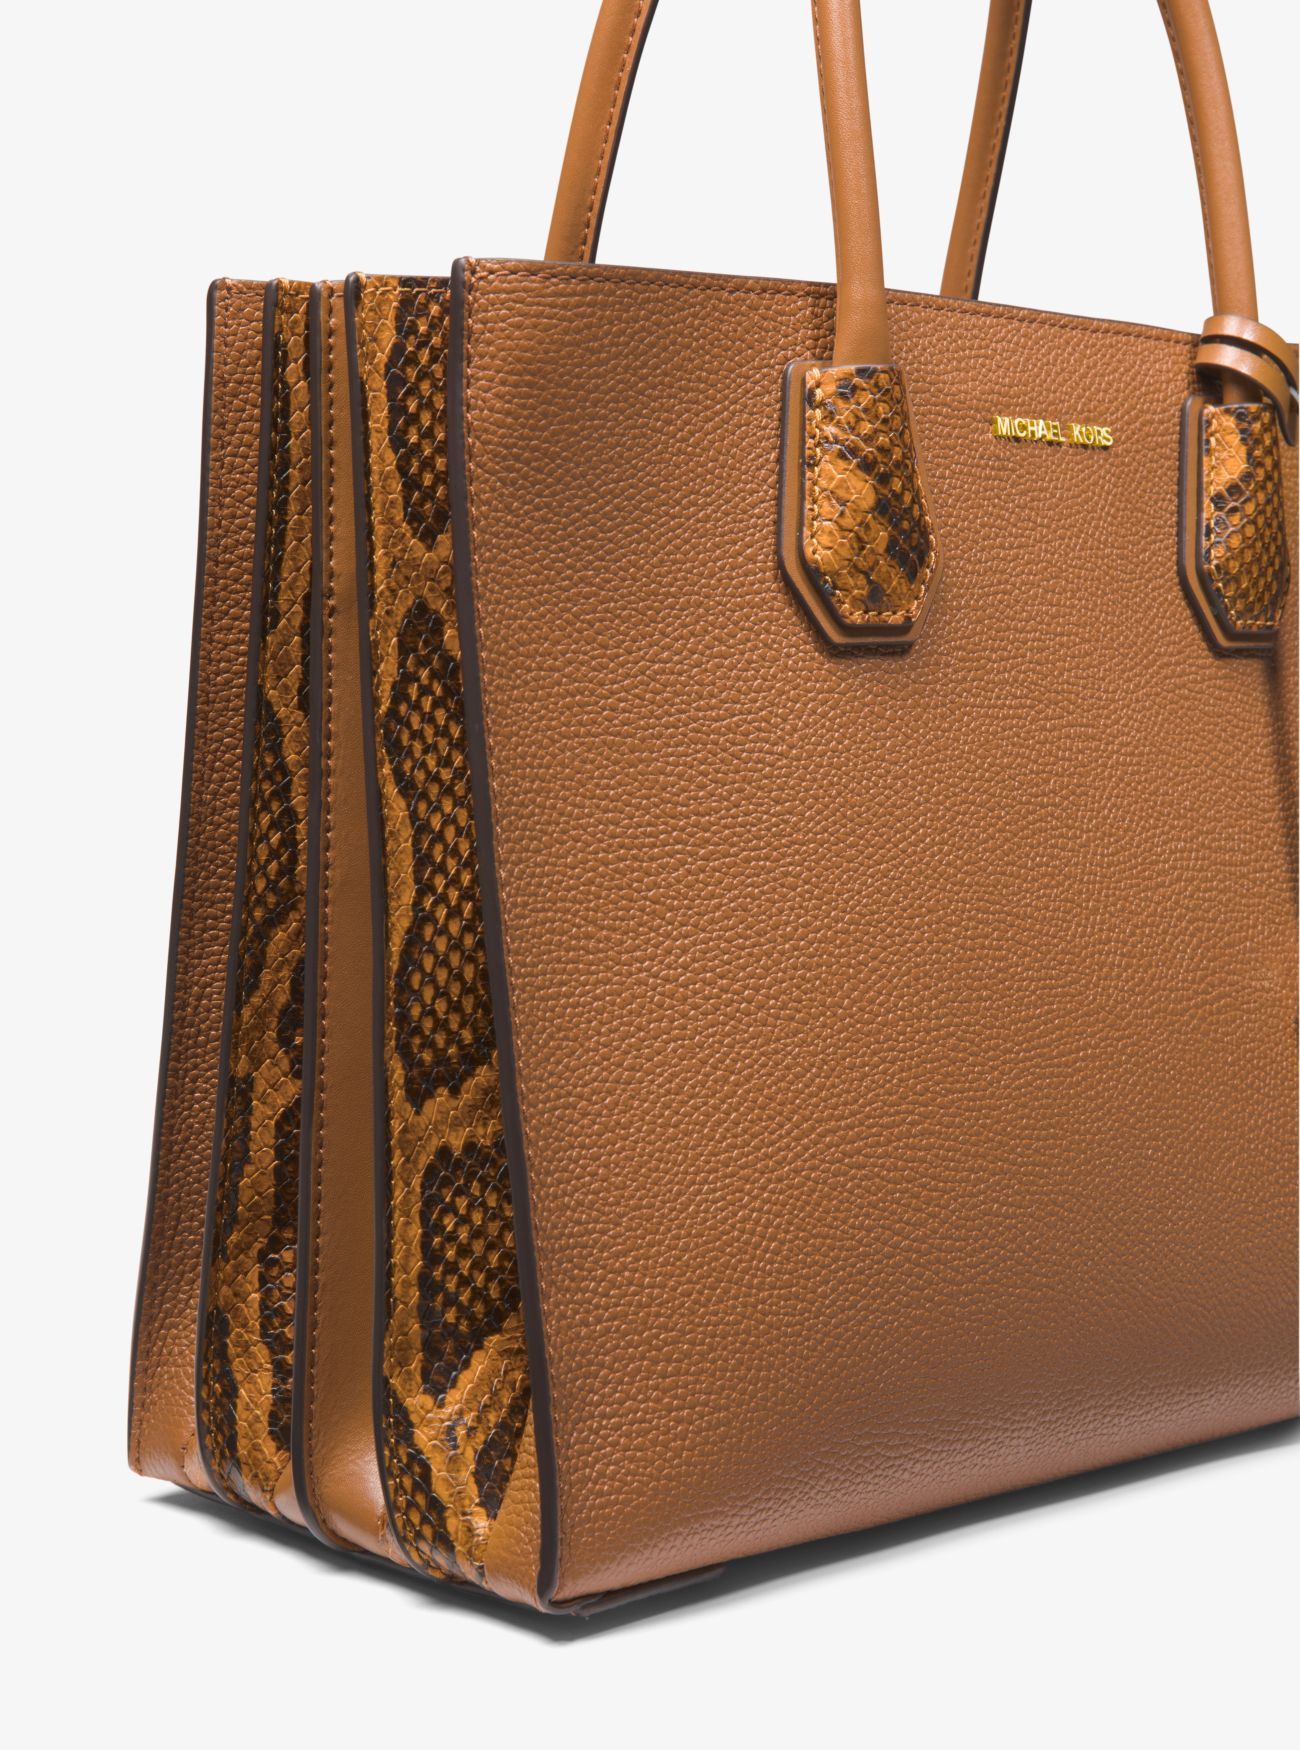 9486d24019 ... Mercer Large Pebbled and Embossed Leather Accordion Tote. MICHAEL  Michael Kors